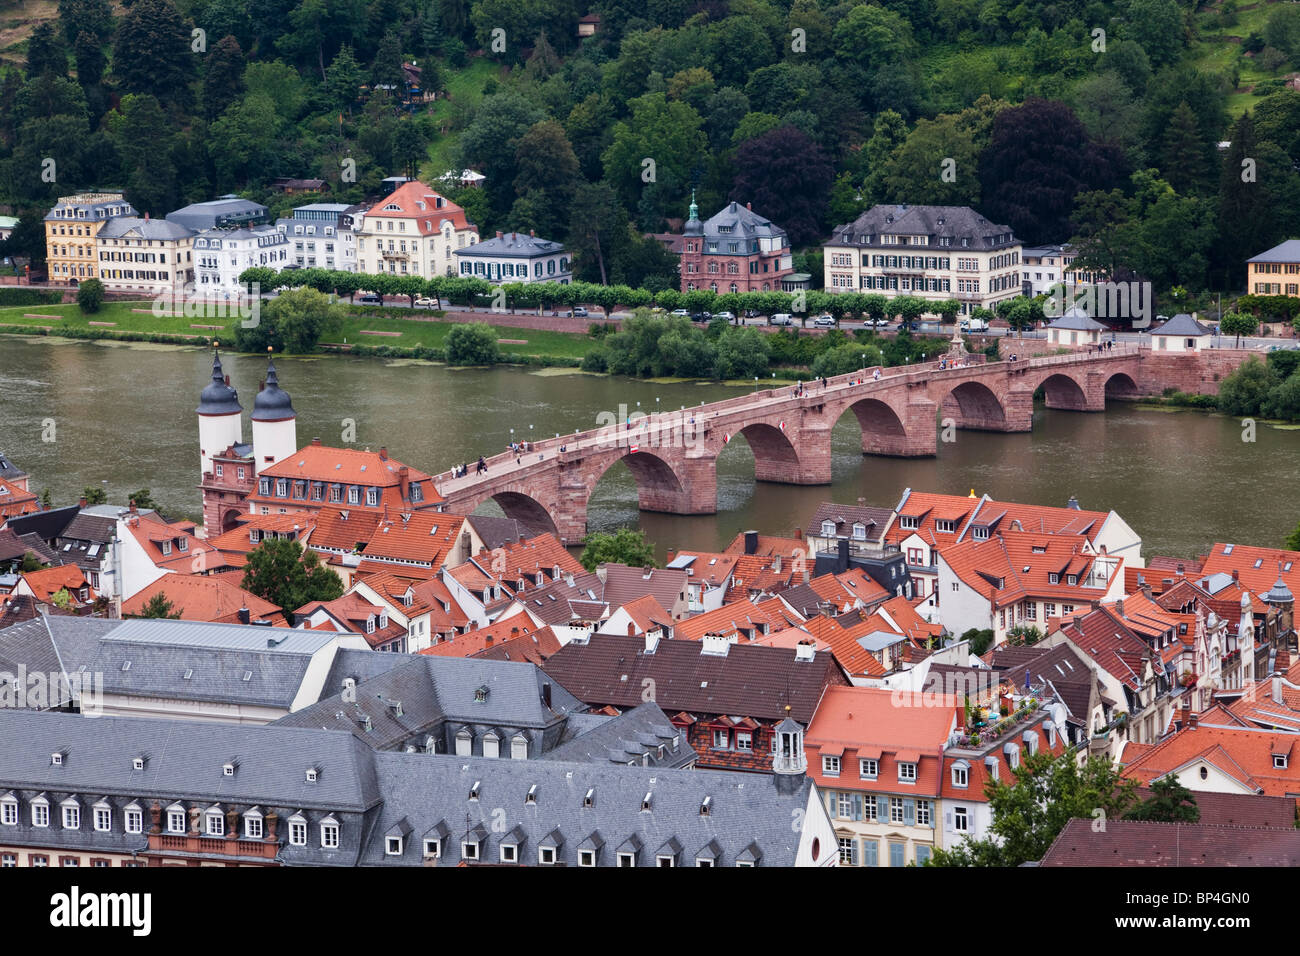 historic heidelberg bridge old town neckar river viewed from stock photo royalty free image. Black Bedroom Furniture Sets. Home Design Ideas